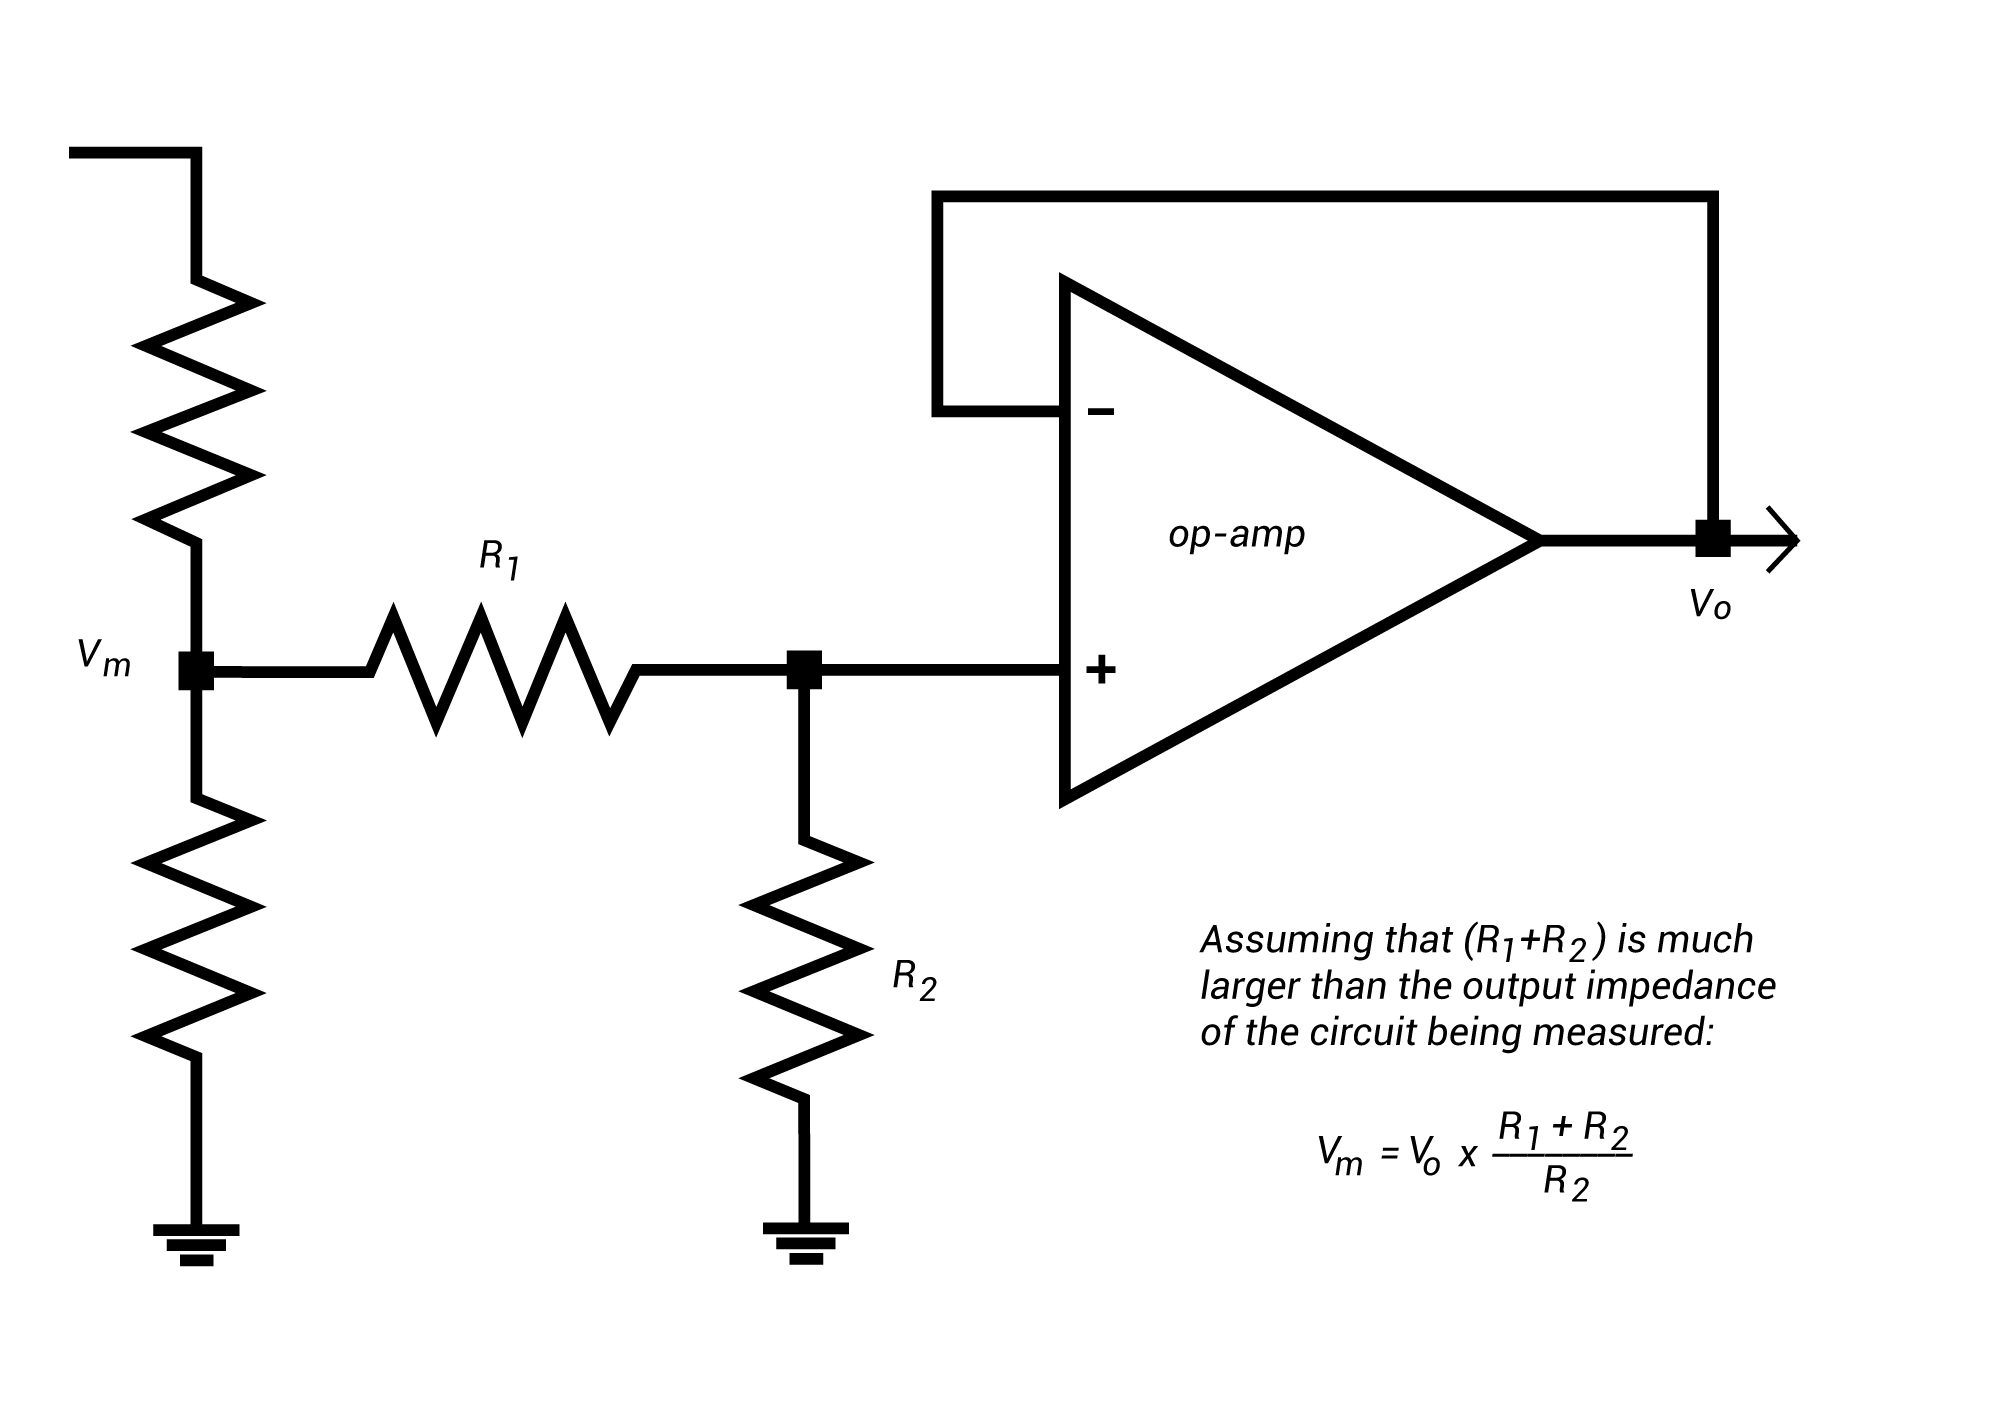 simple resistive voltage divider circuit